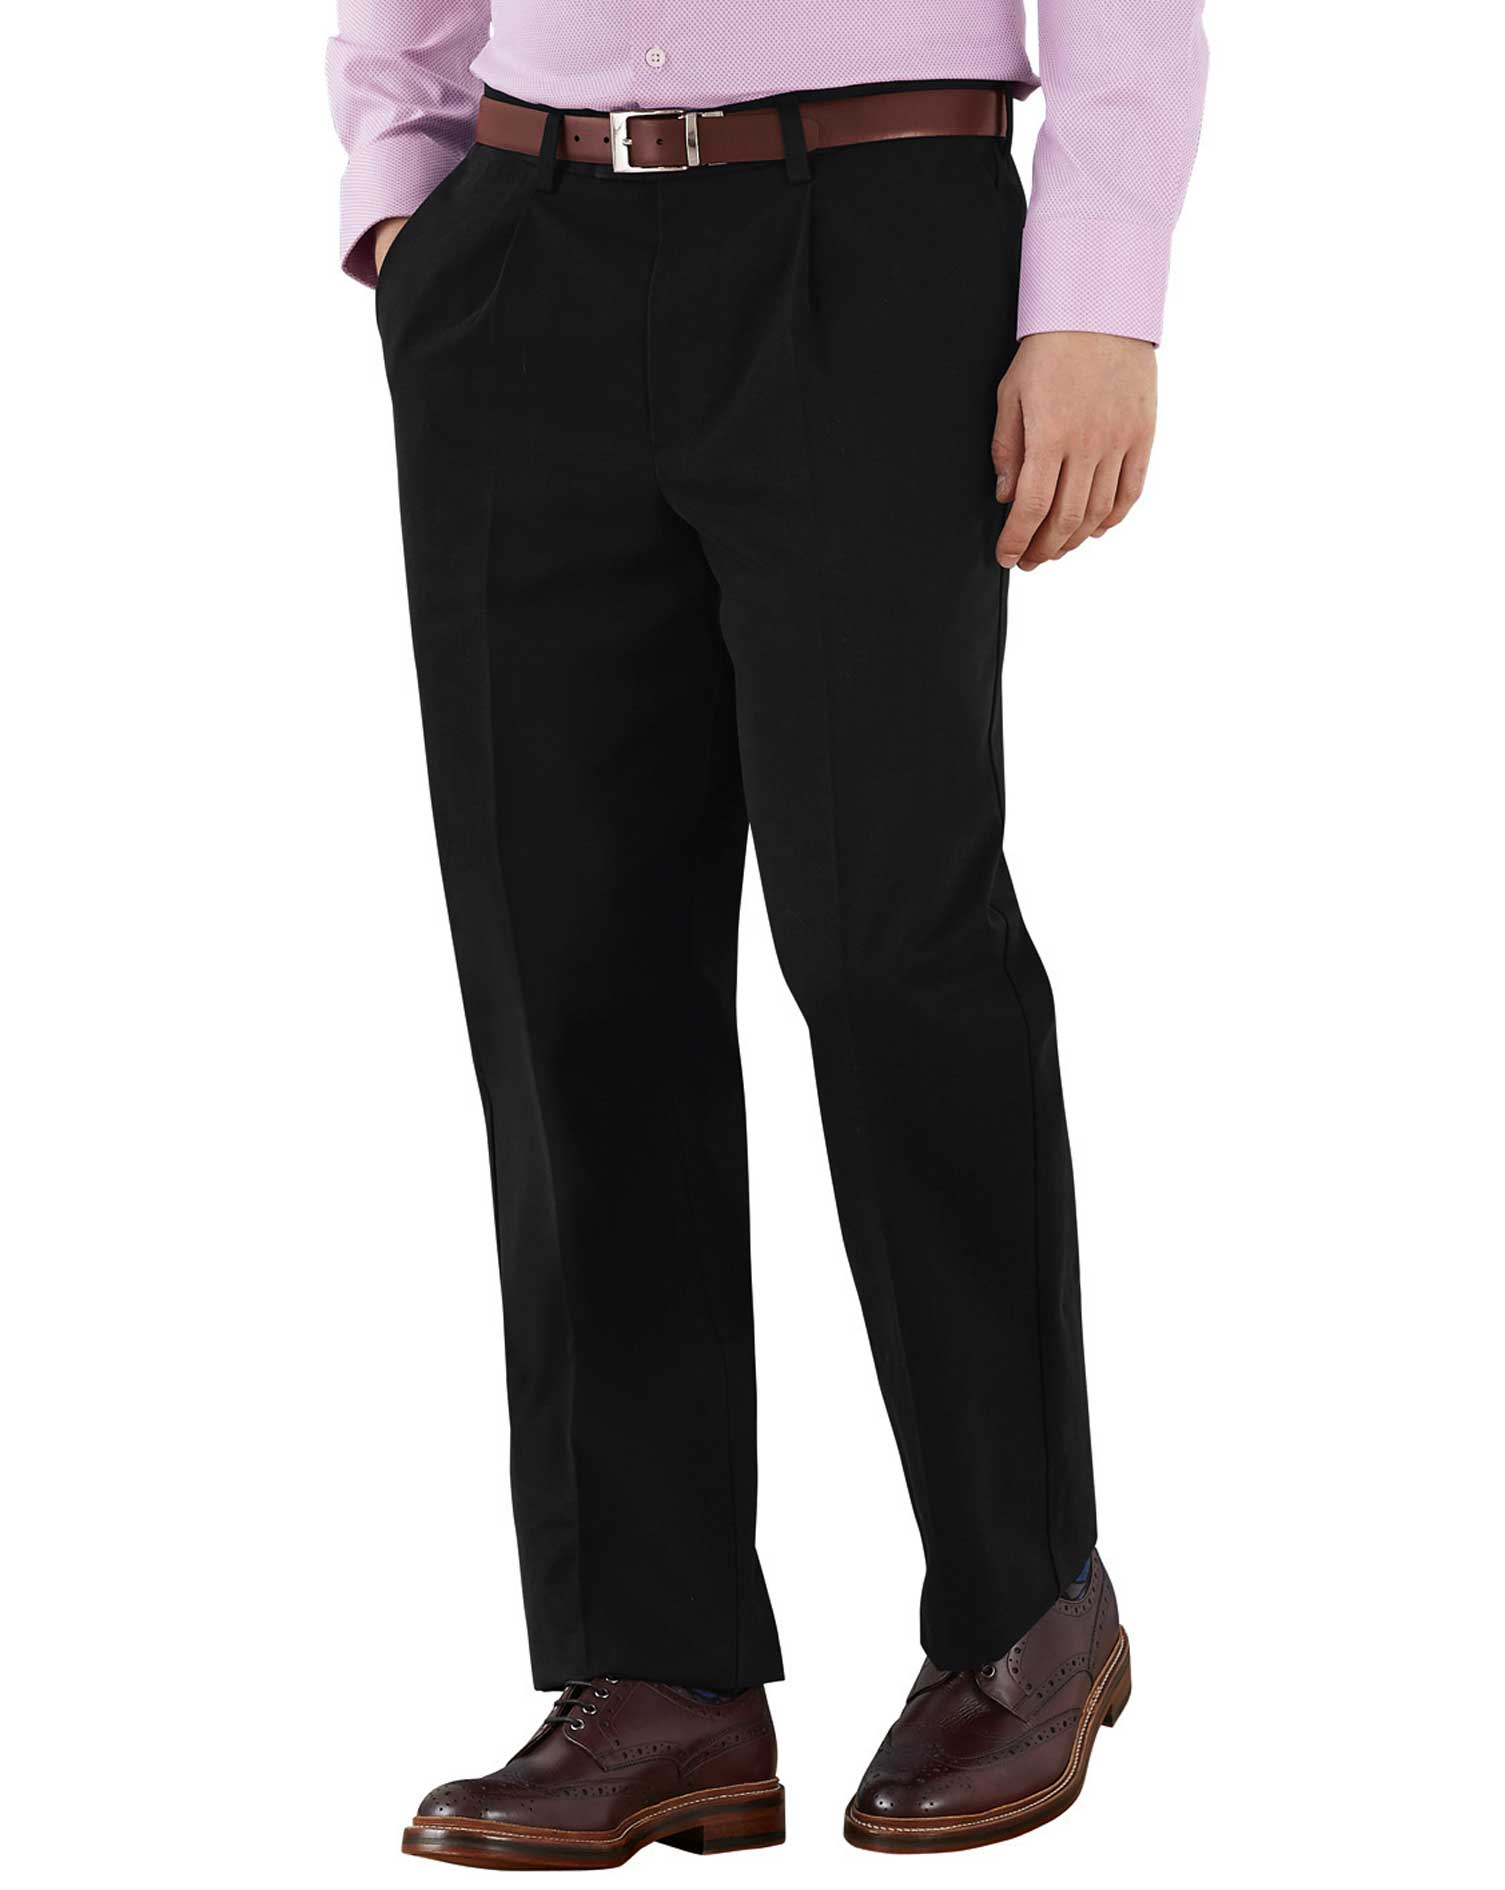 Black Classic Fit Single Pleat Non-Iron Cotton Chino Trousers Size W36 L38 by Charles Tyrwhitt